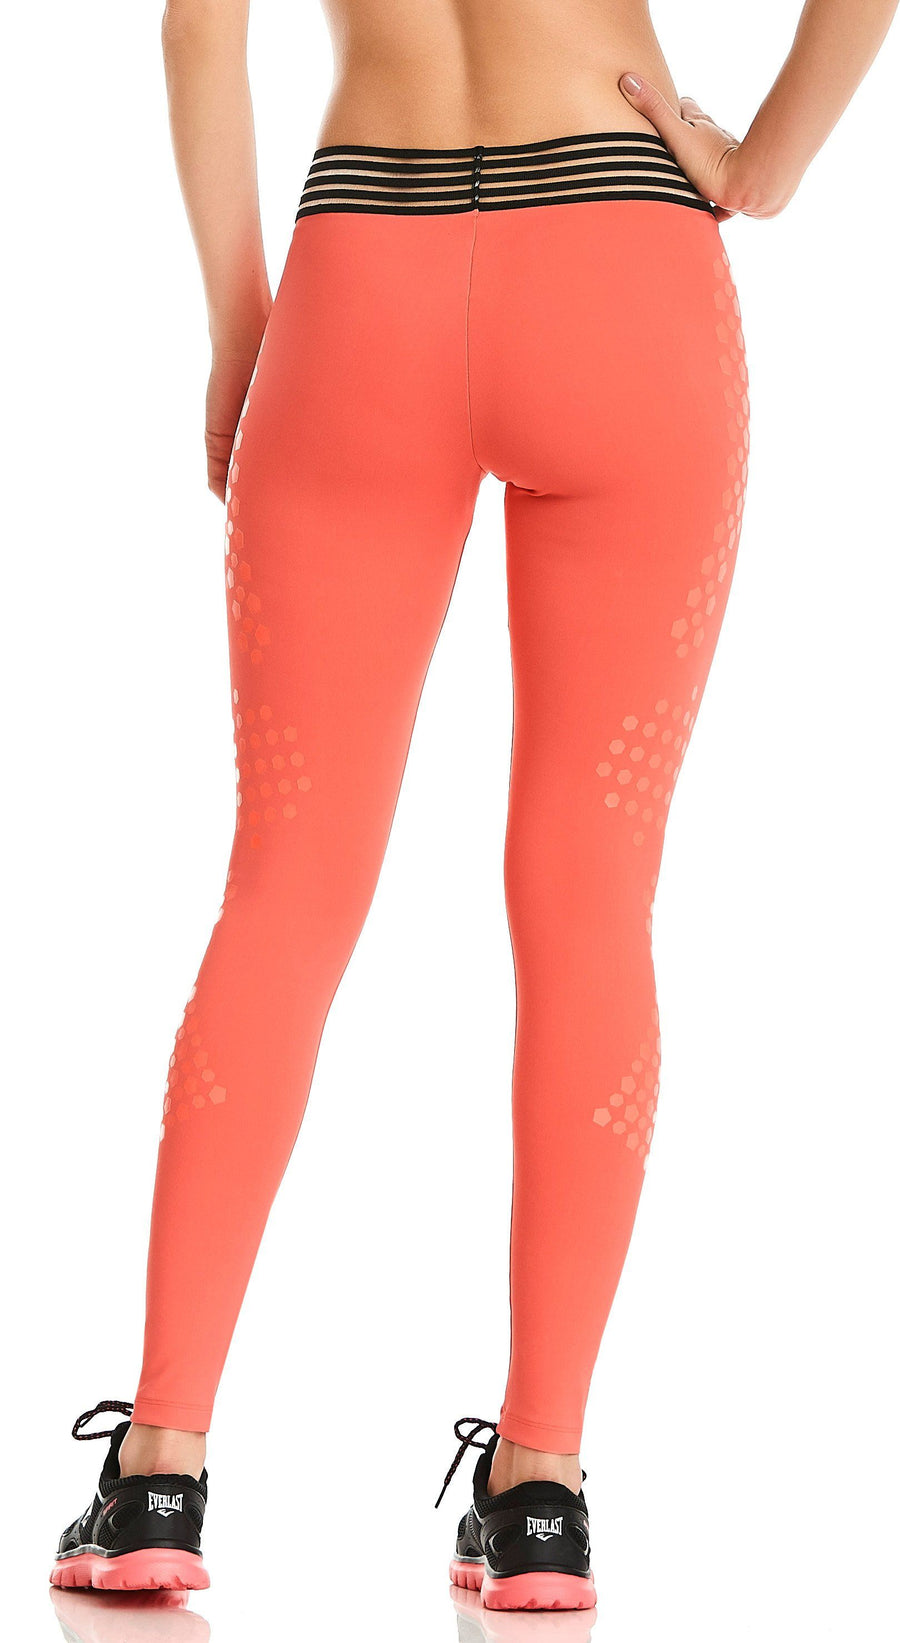 Brazilian Legging - Waterproof Hit